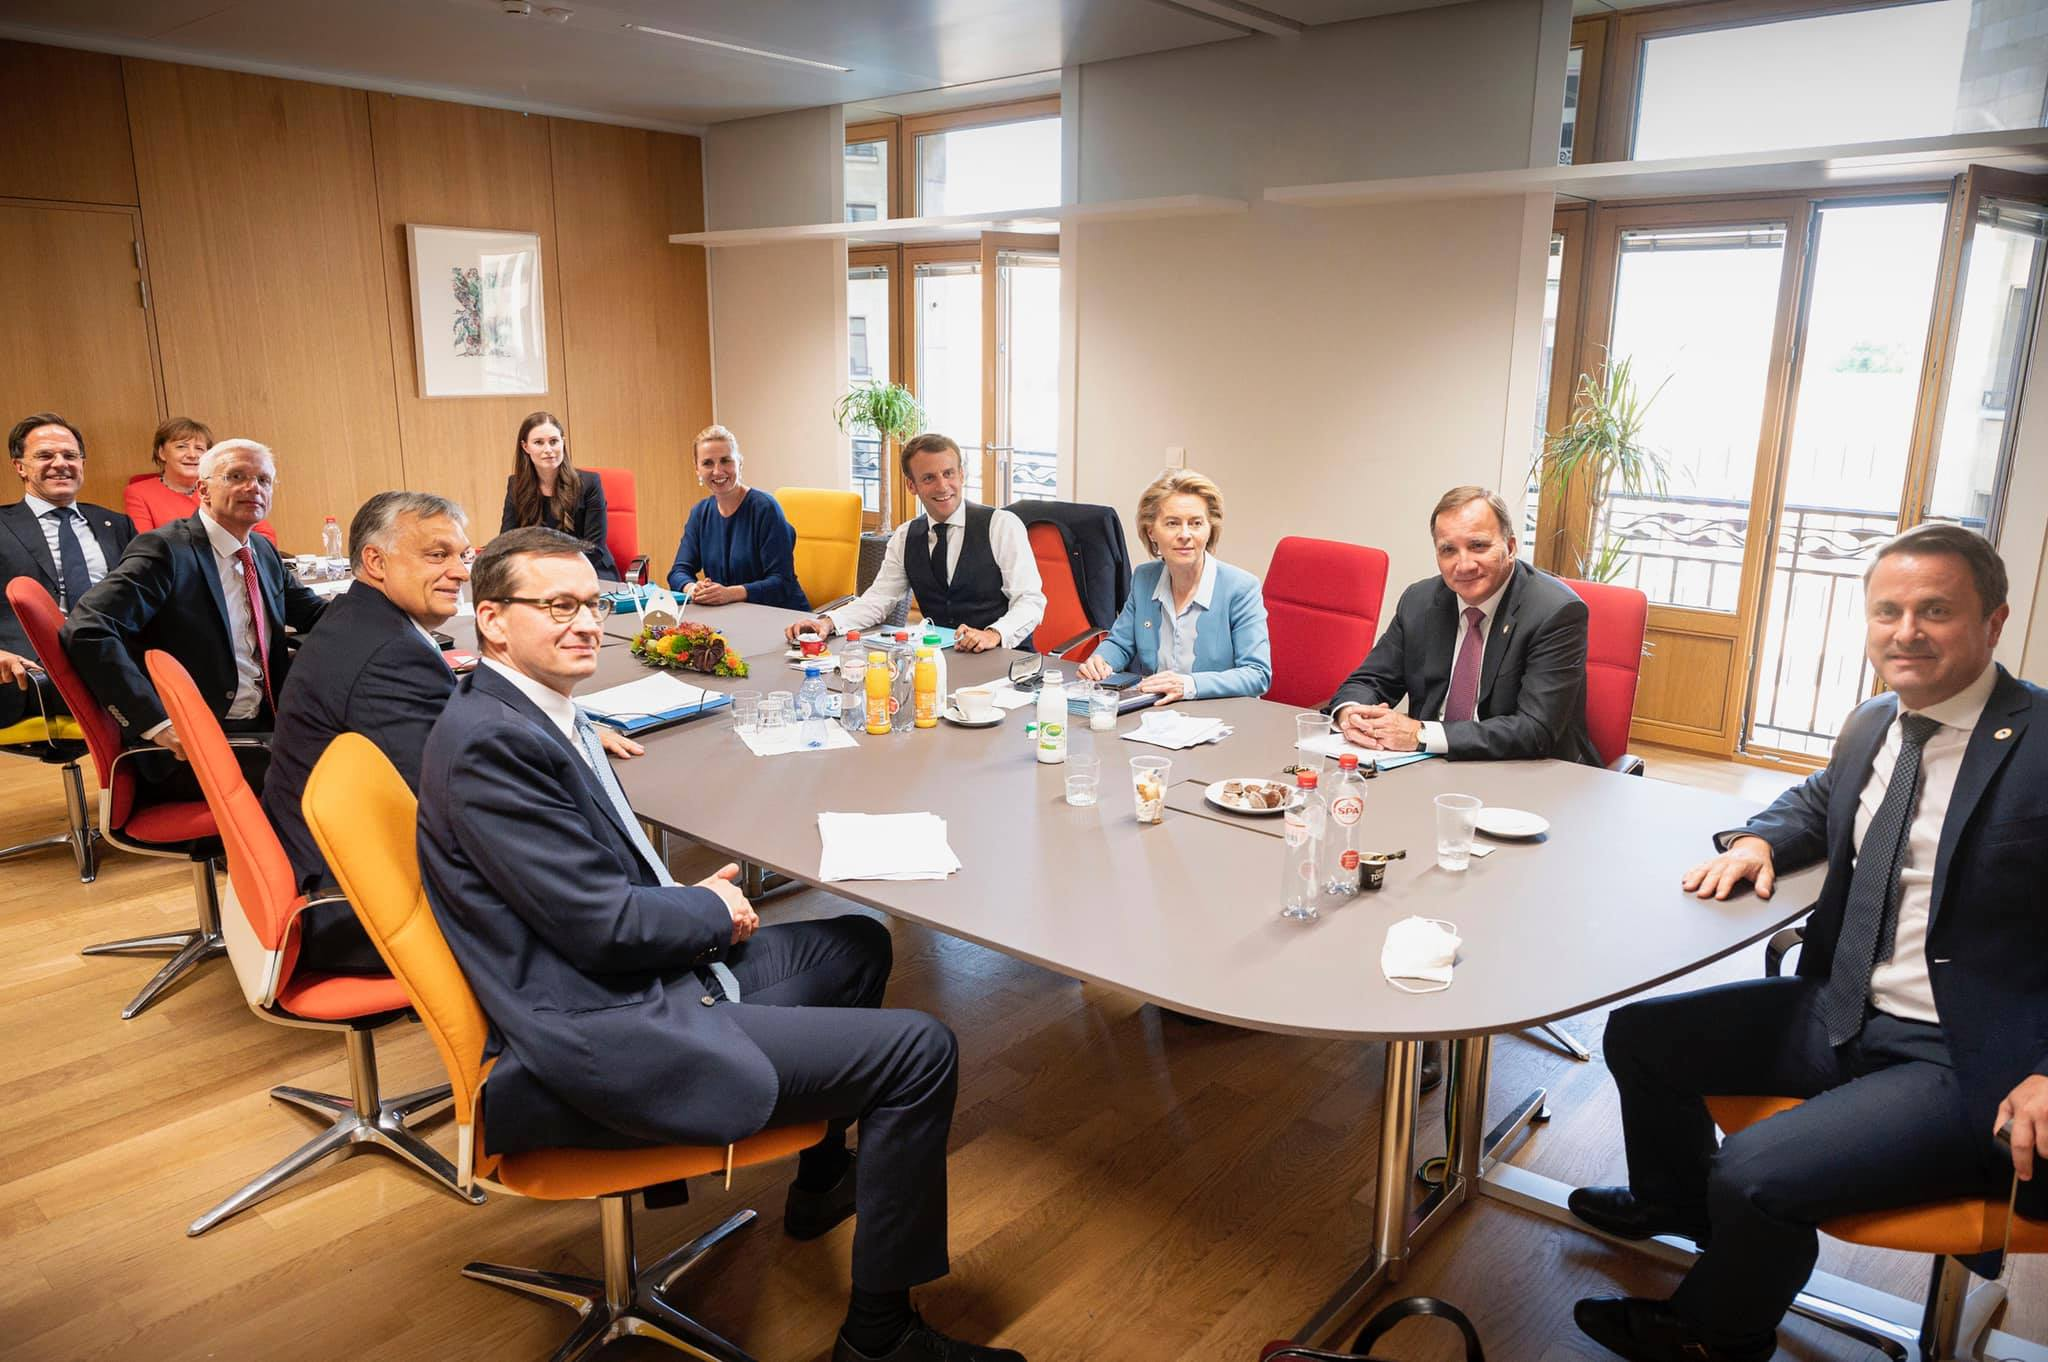 Rule of Law Criteria Stays, Orbán Still Glad about New Budget